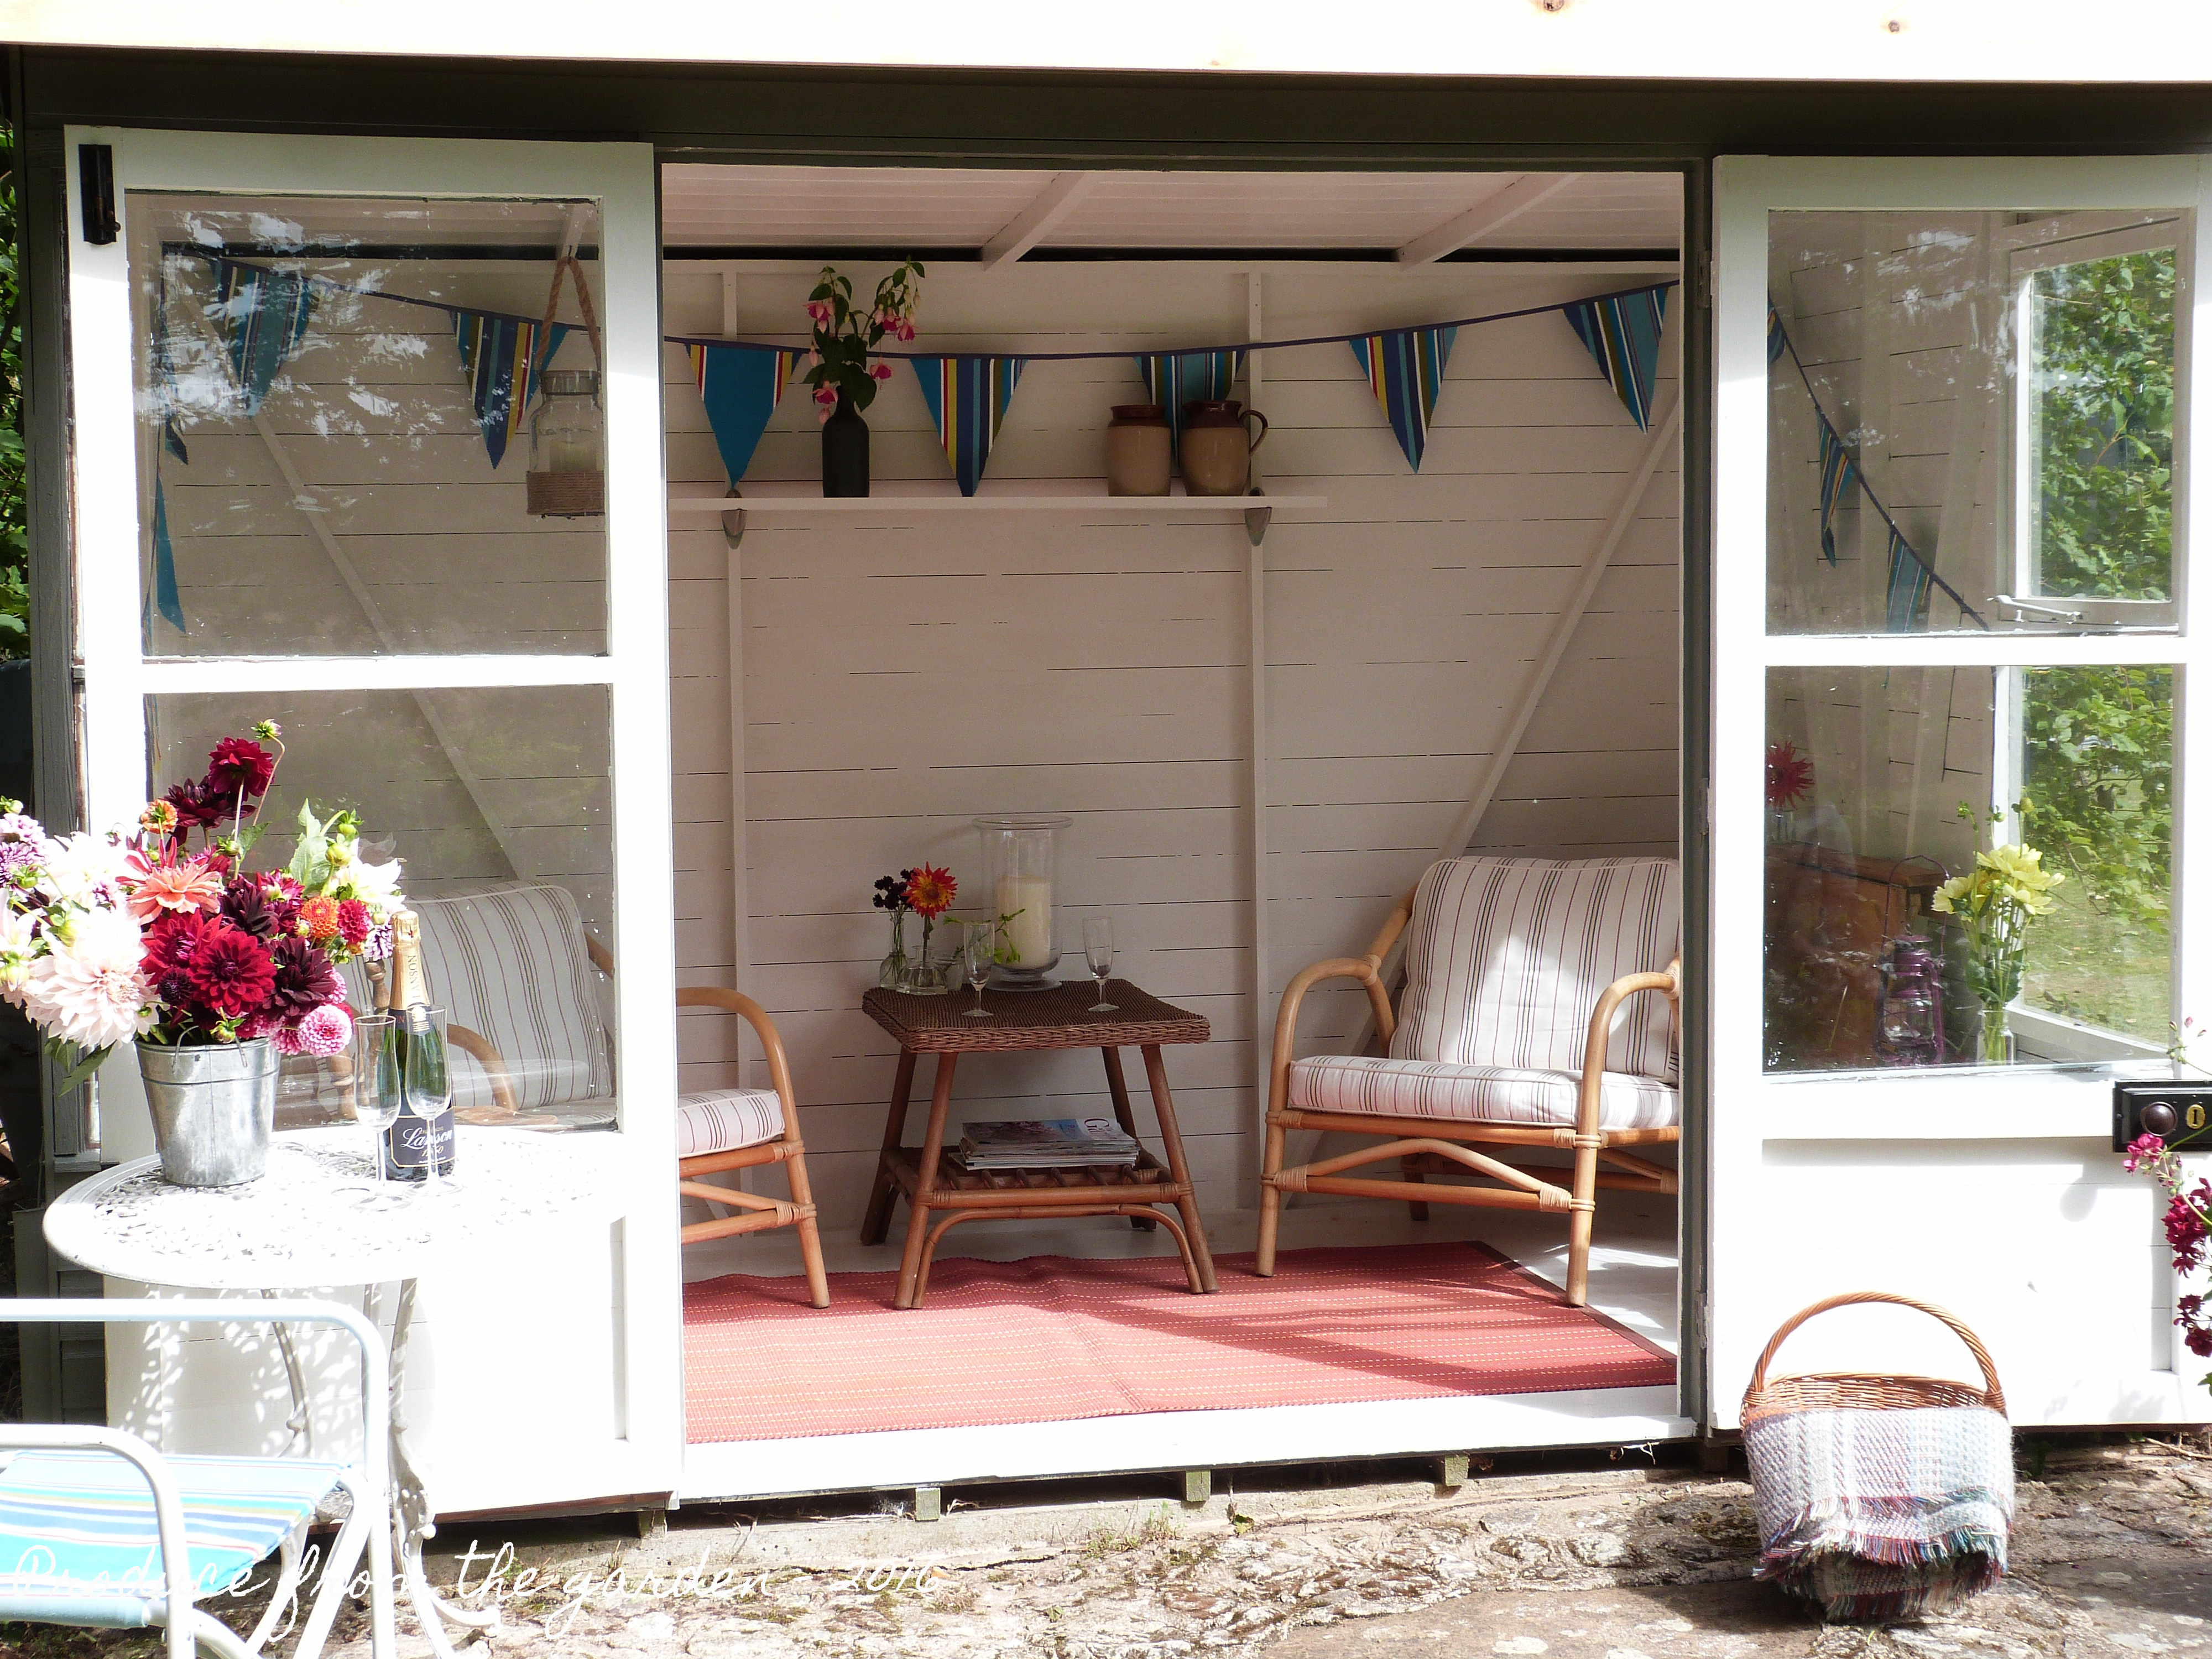 Summer House looking inside & A Summer House renovation \u2013 Produce From The Garden